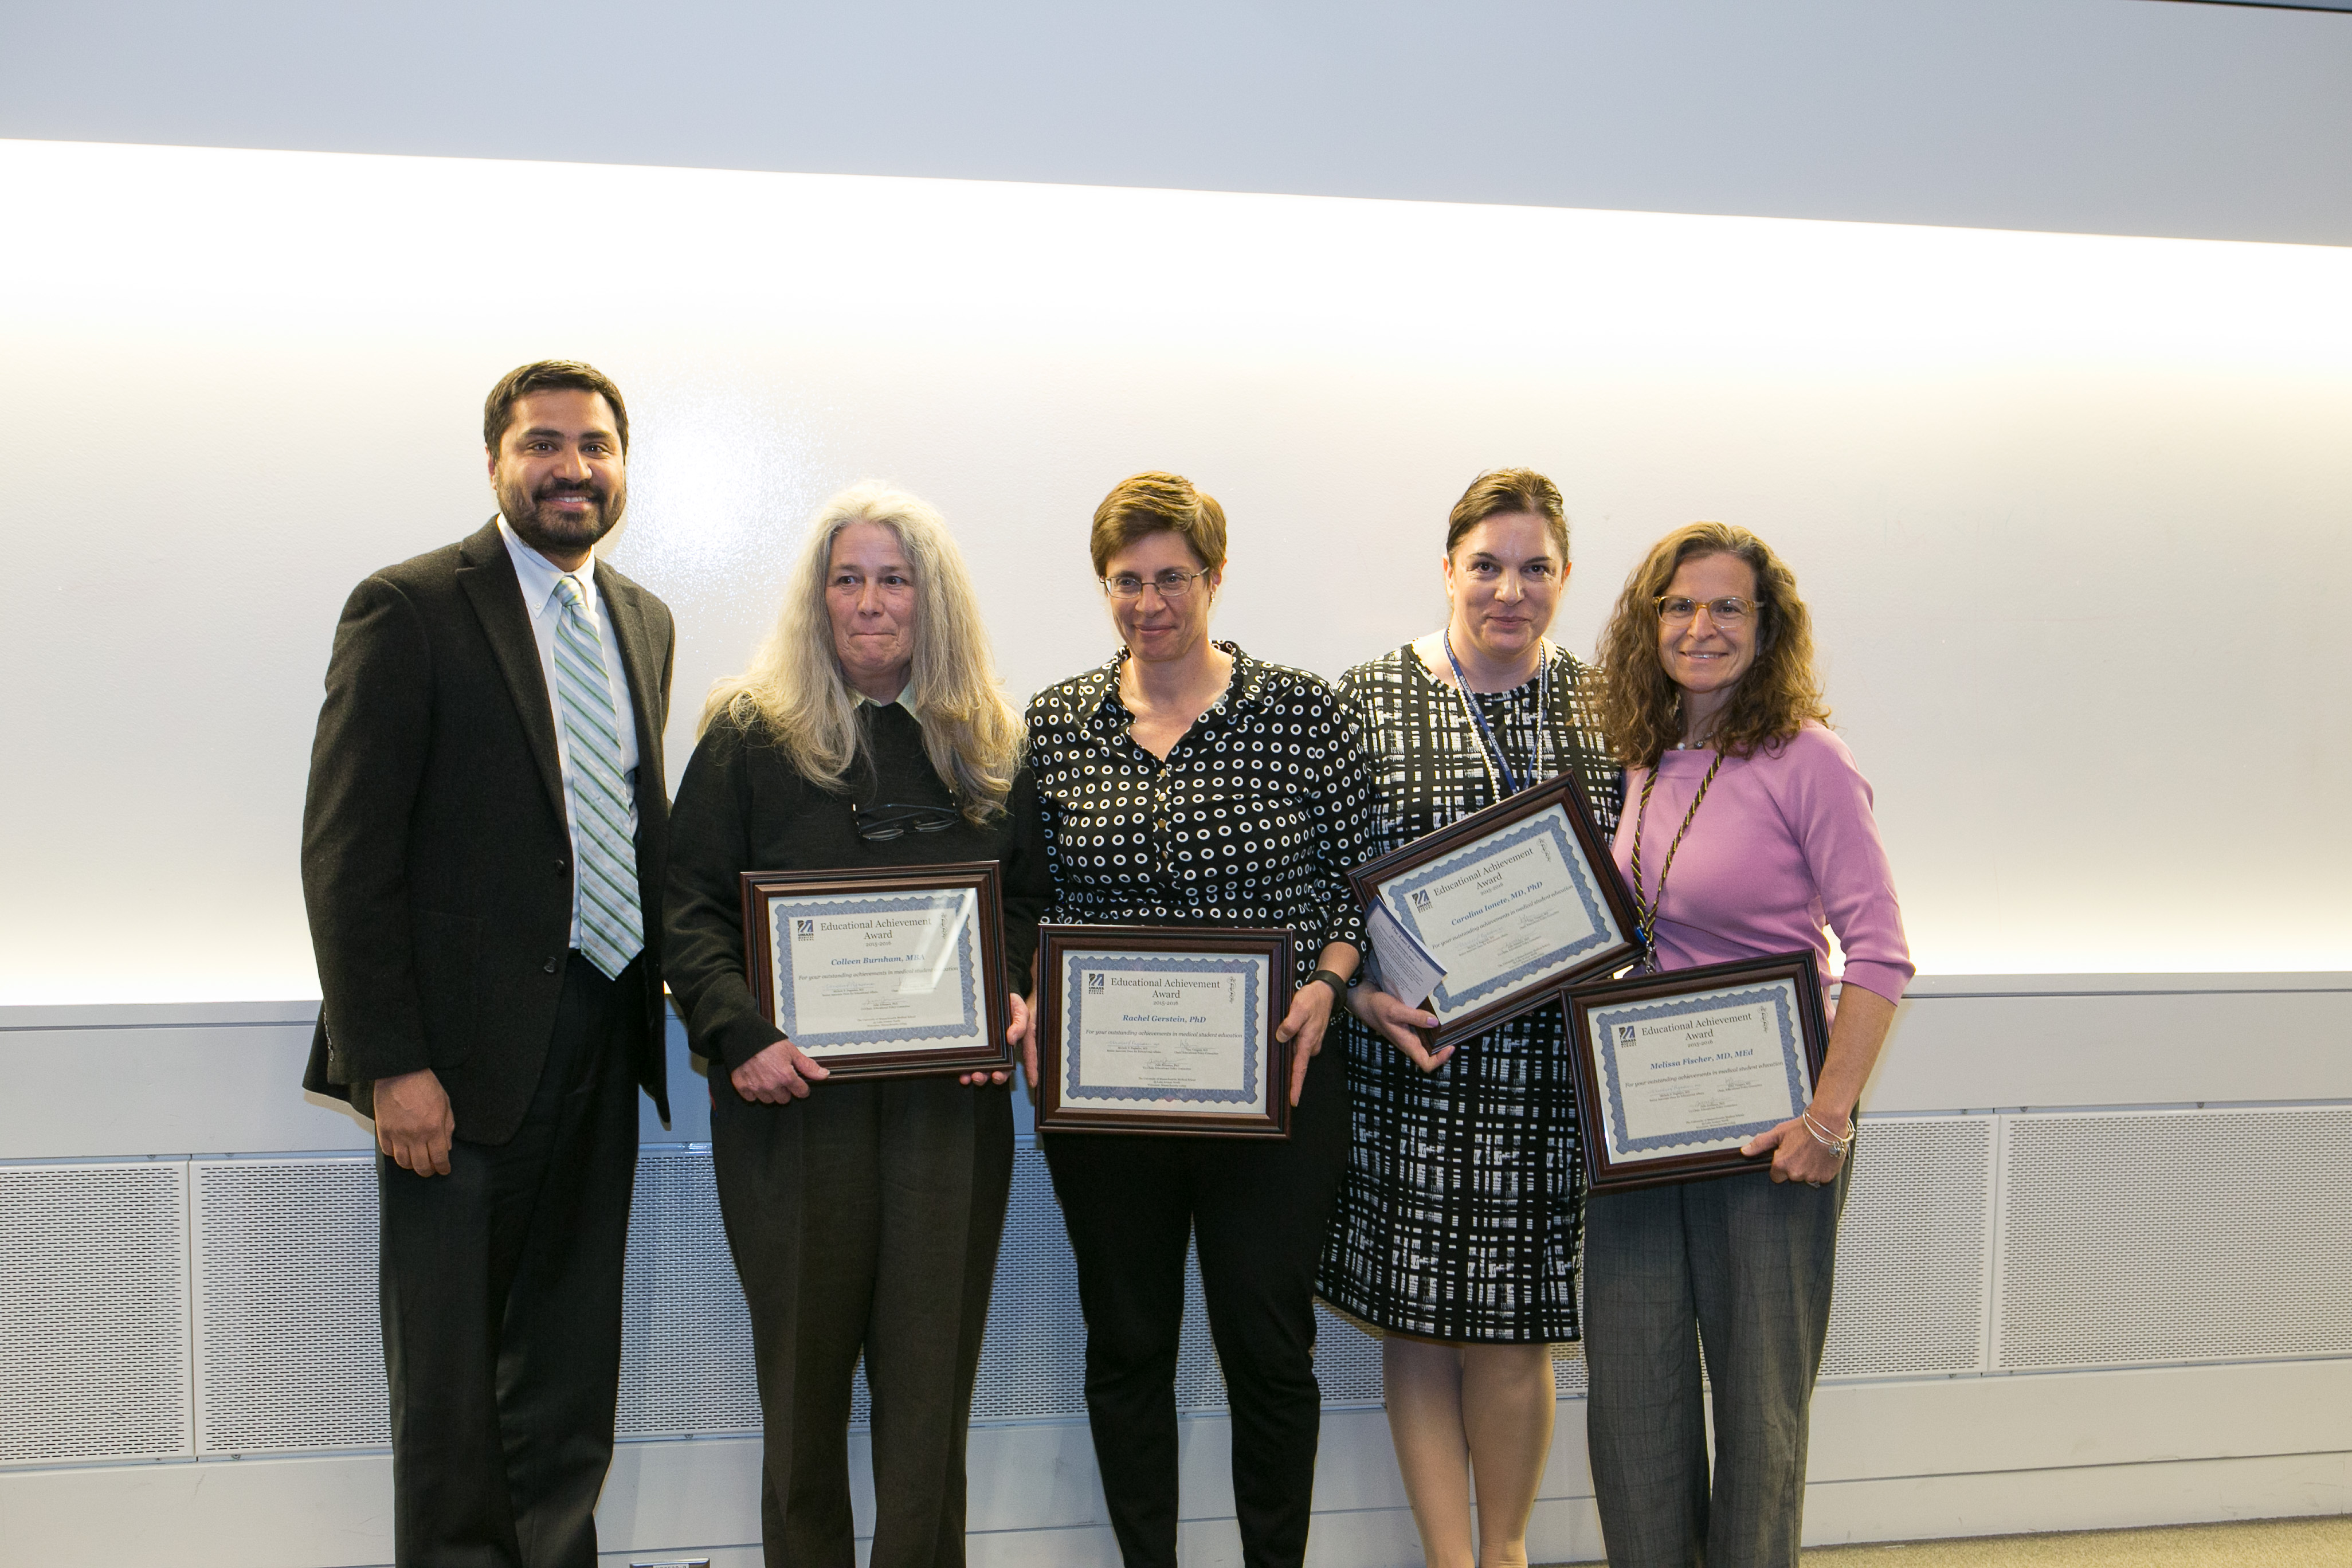 Vijay K. Vanguri, MD Chair, Educational Policy Committee presents Capstone Course Leaders Colleen Burnham MBA, Rachel M. Gerstein PhD, Steven C. Hatch MD, Carolina Ionete MD, PhD, and Melissa A. Fischer MD, MEd with the Educational Achievement (Star) Award.